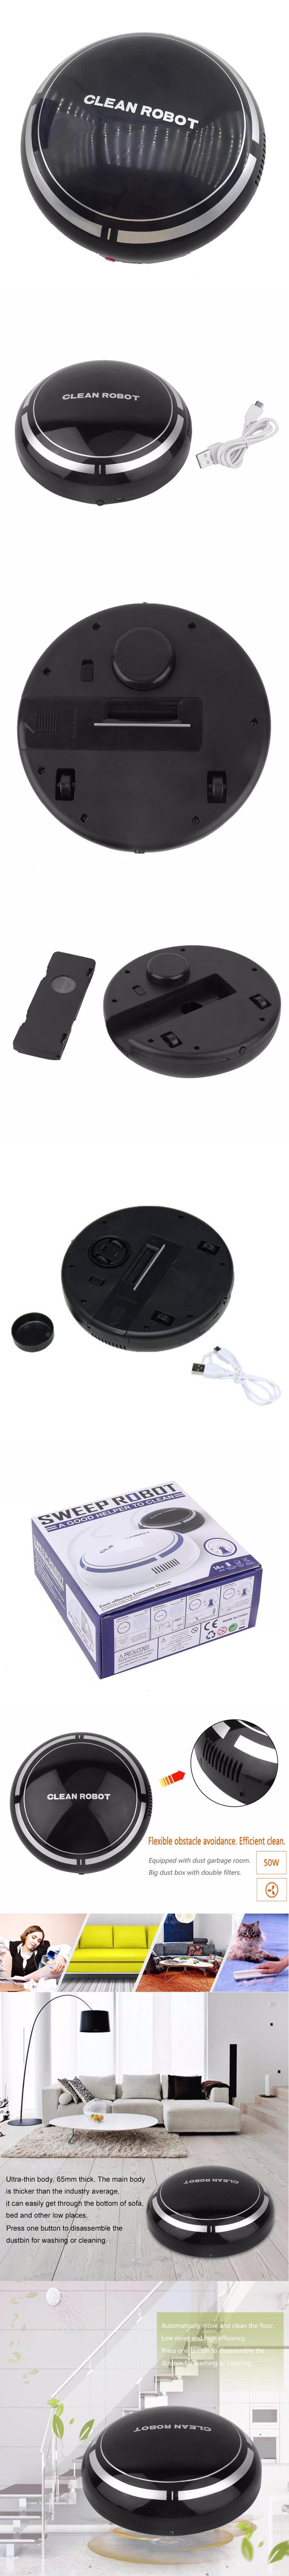 KICCY Automatic USB Rechargeable Smart Robot, Vacuum Floor Cleaner w ...